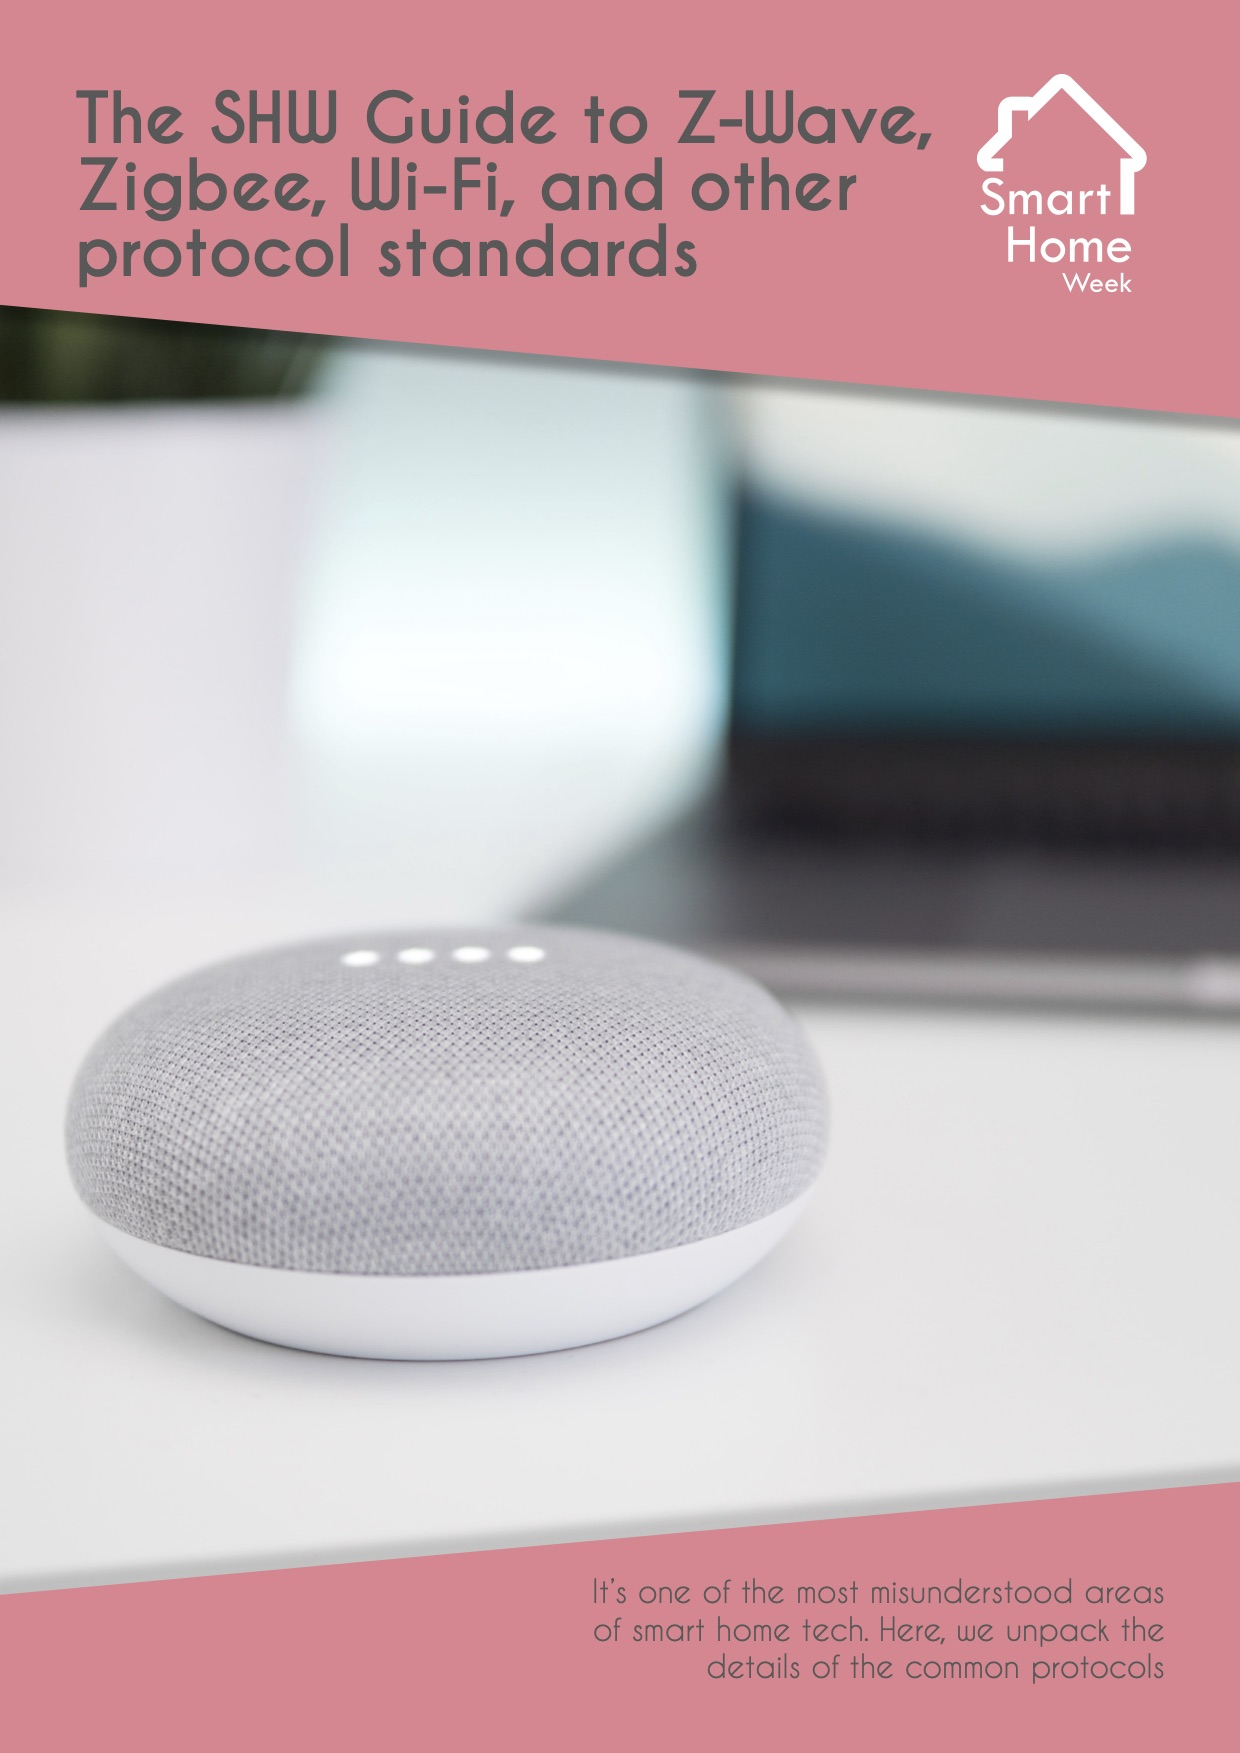 Front-cover-of-smart-home-week-guide-to-z-wave-zigbee-wifi-and-other-protocol-standards-featuring-image-of-google-mini